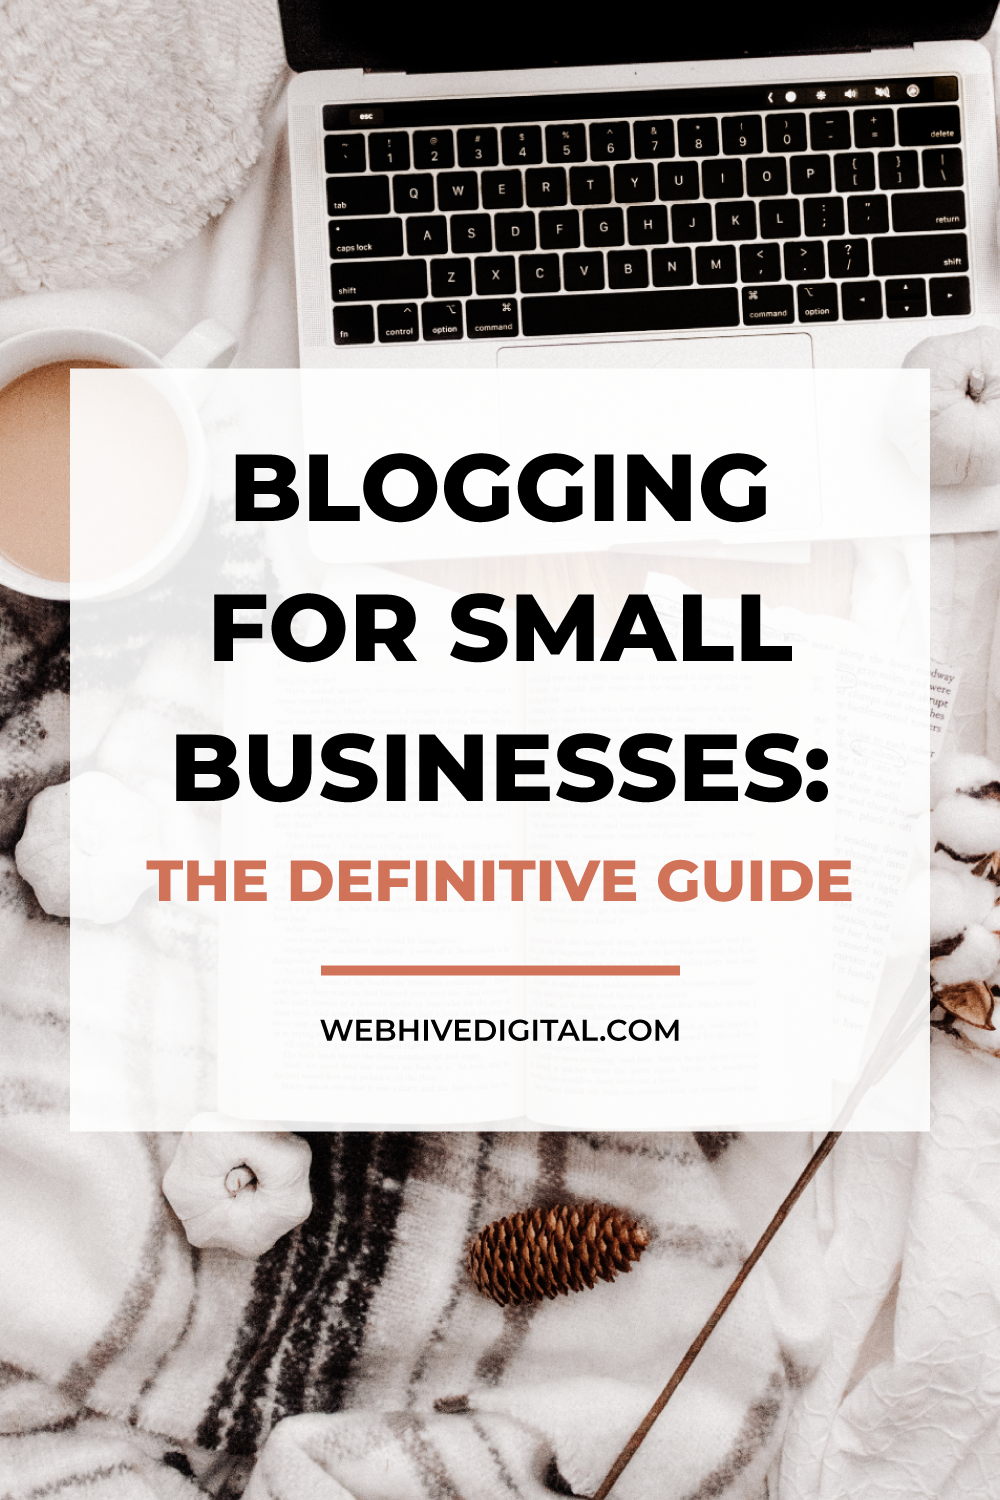 Blogging for Small Businesses - The Definitive Guide